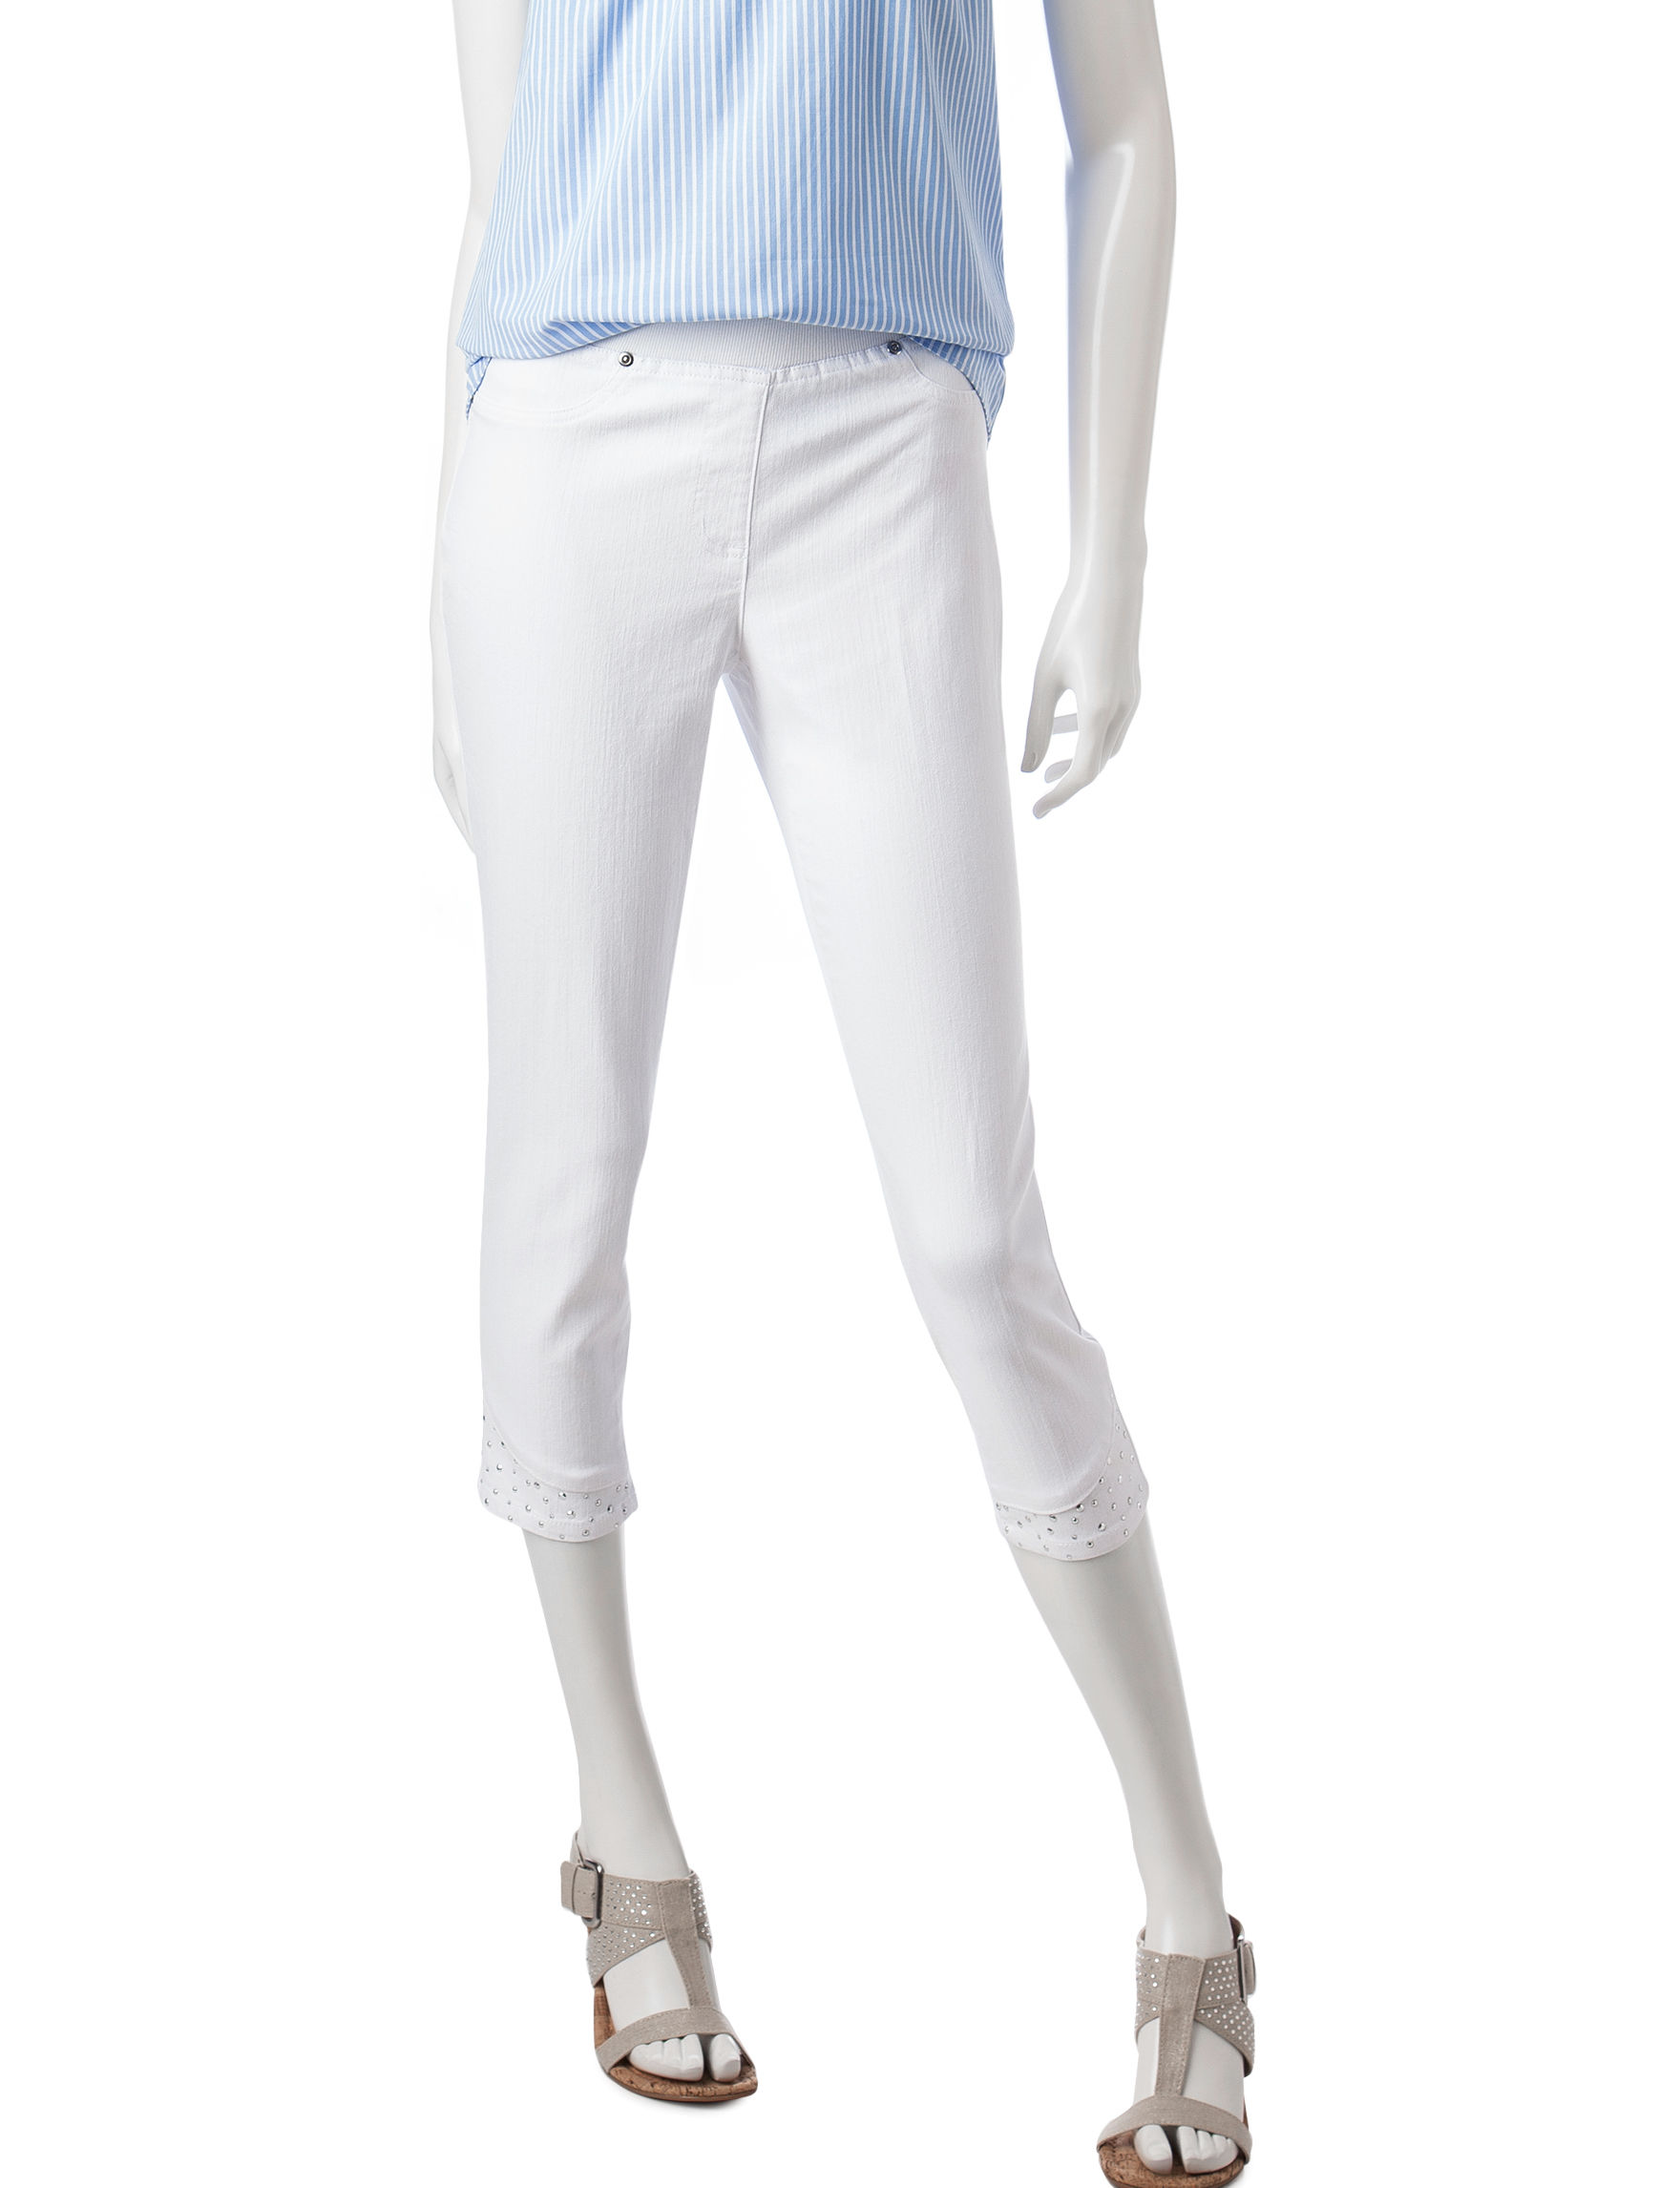 Hearts of Palm White Capris & Crops